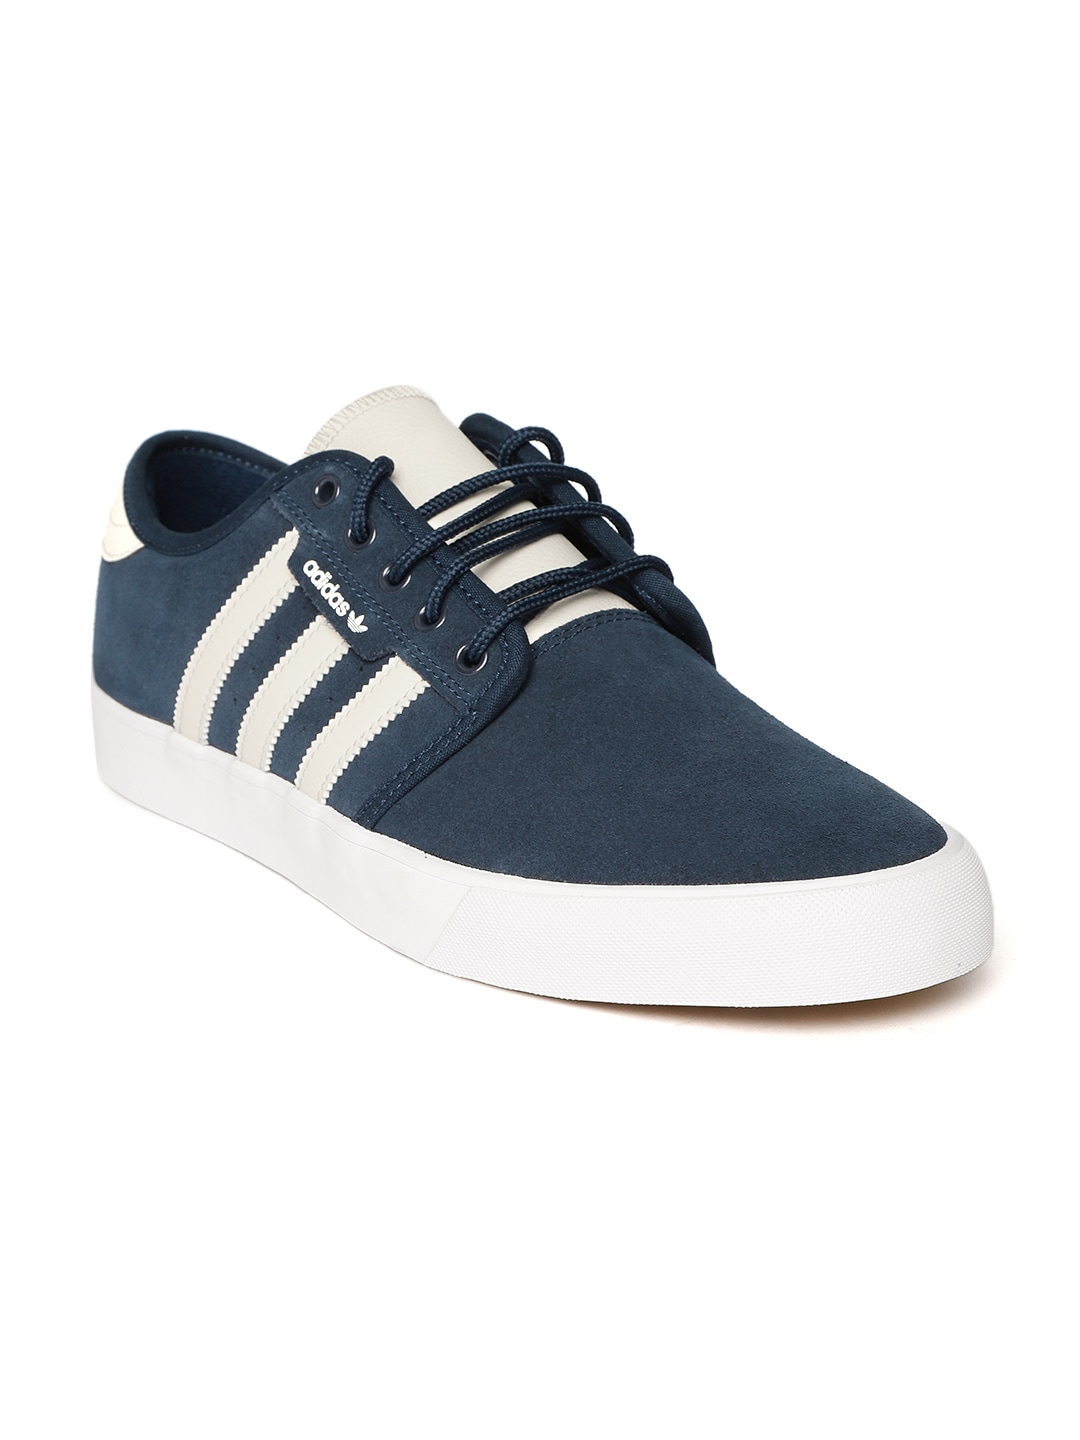 b97bb9a9b1407 Adidas Originals - Buy Adidas Originals Products Online